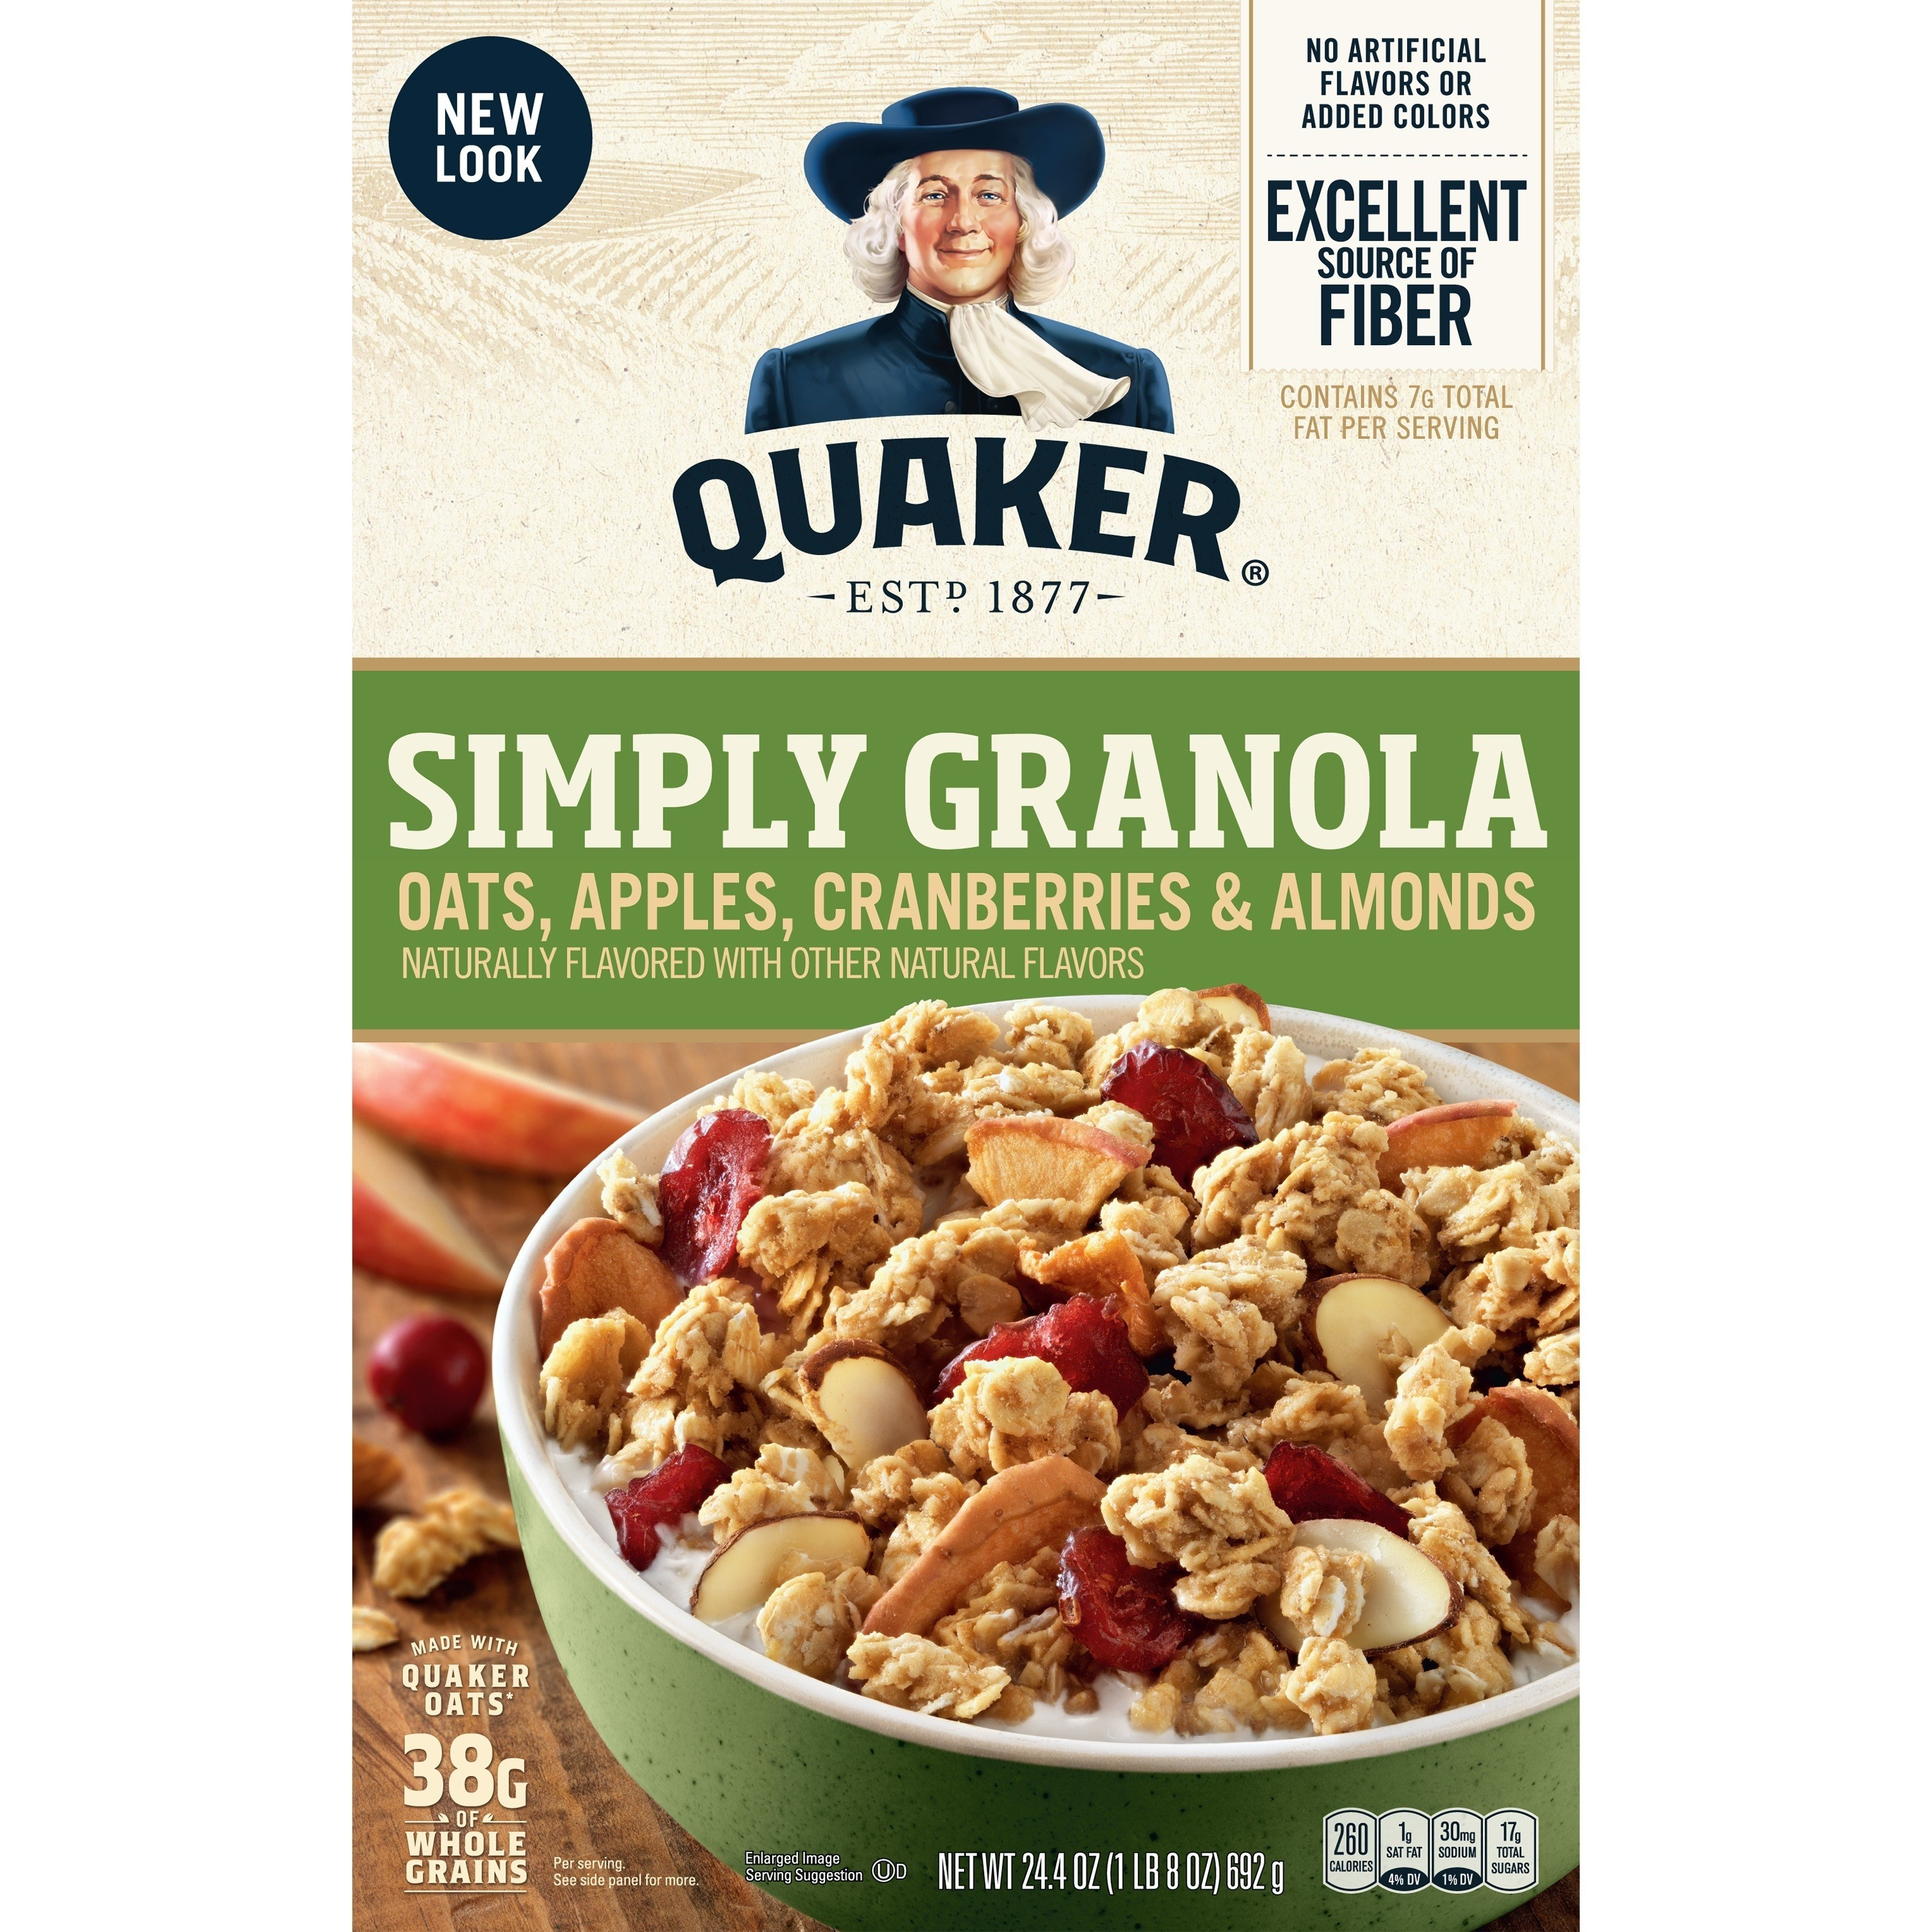 the box of granola with a photo of the granola